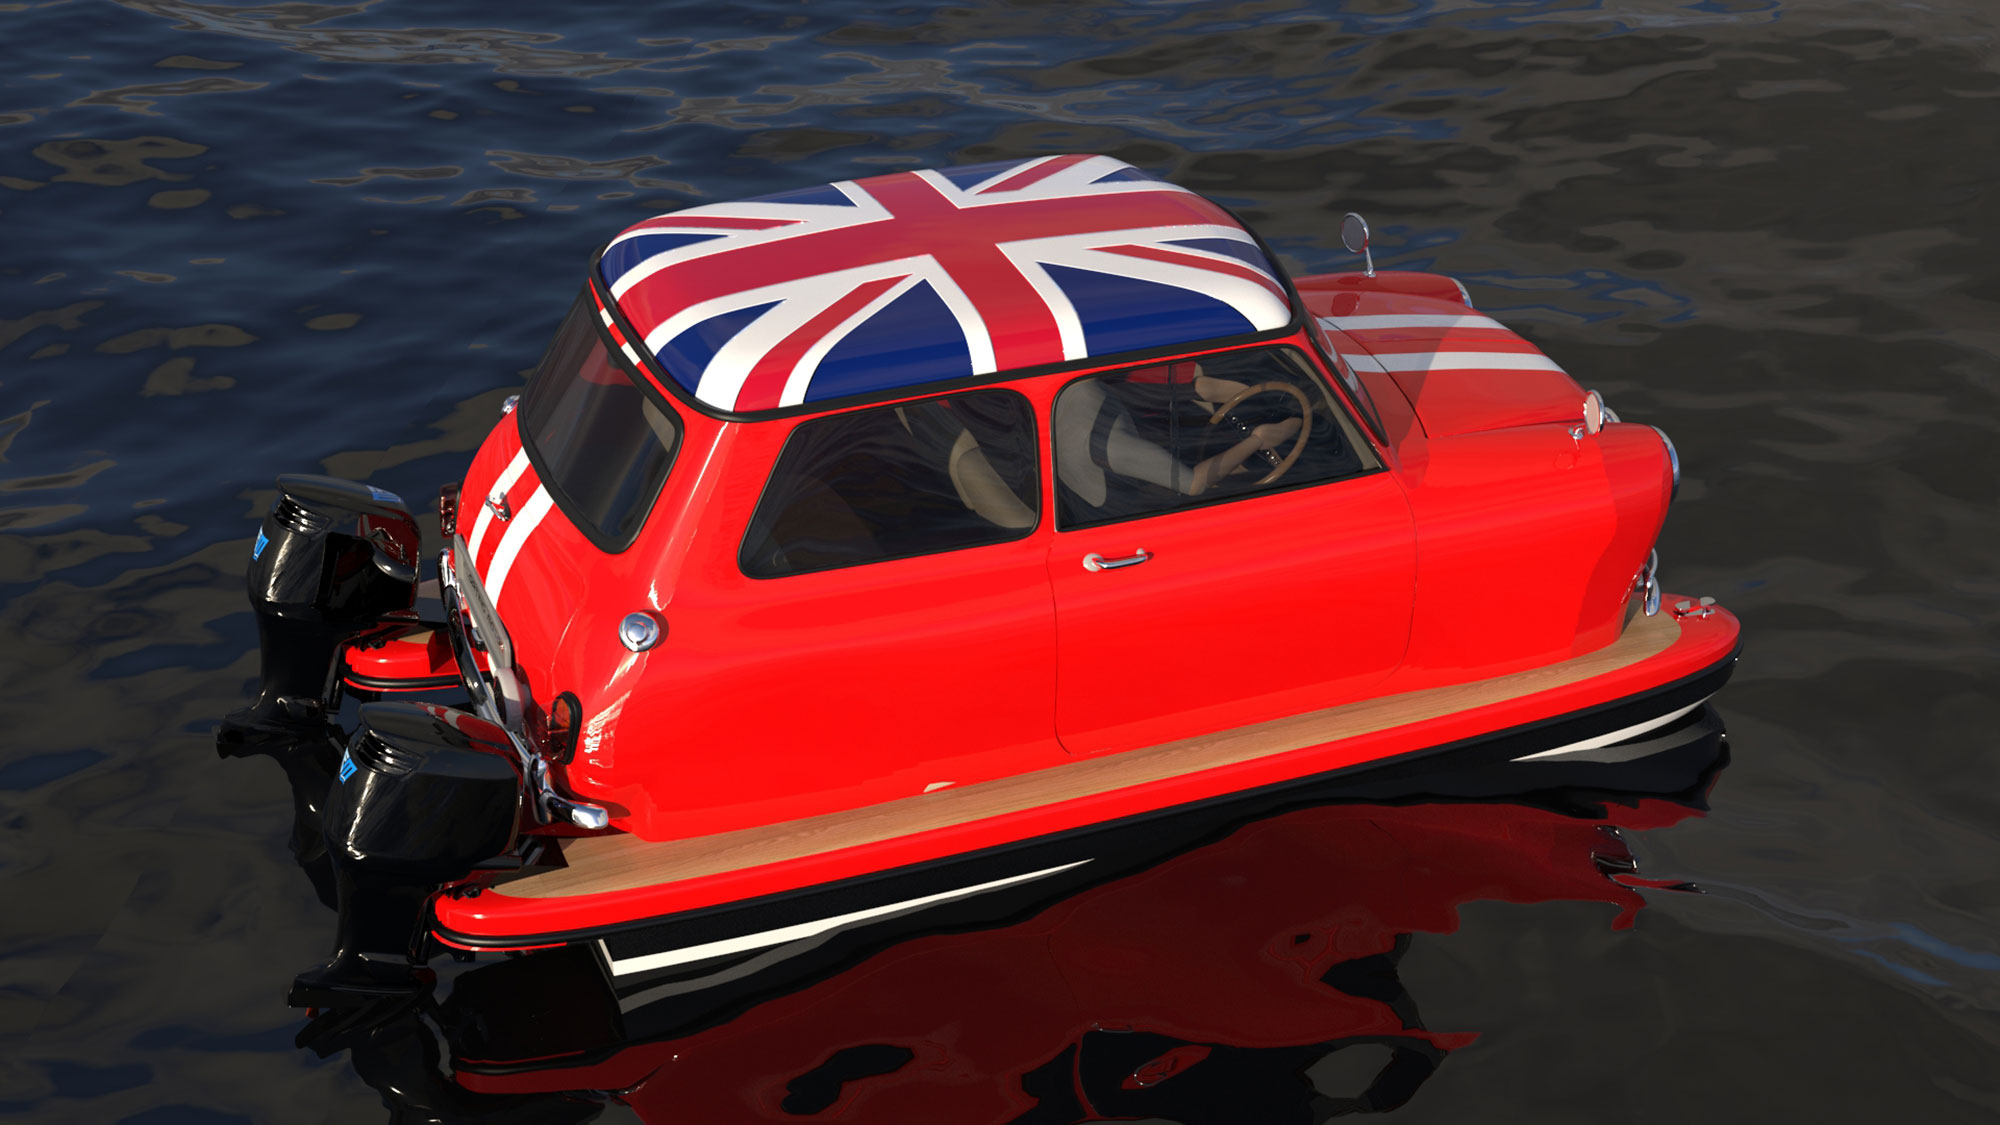 Floating Motors Classic Turned Into Boats